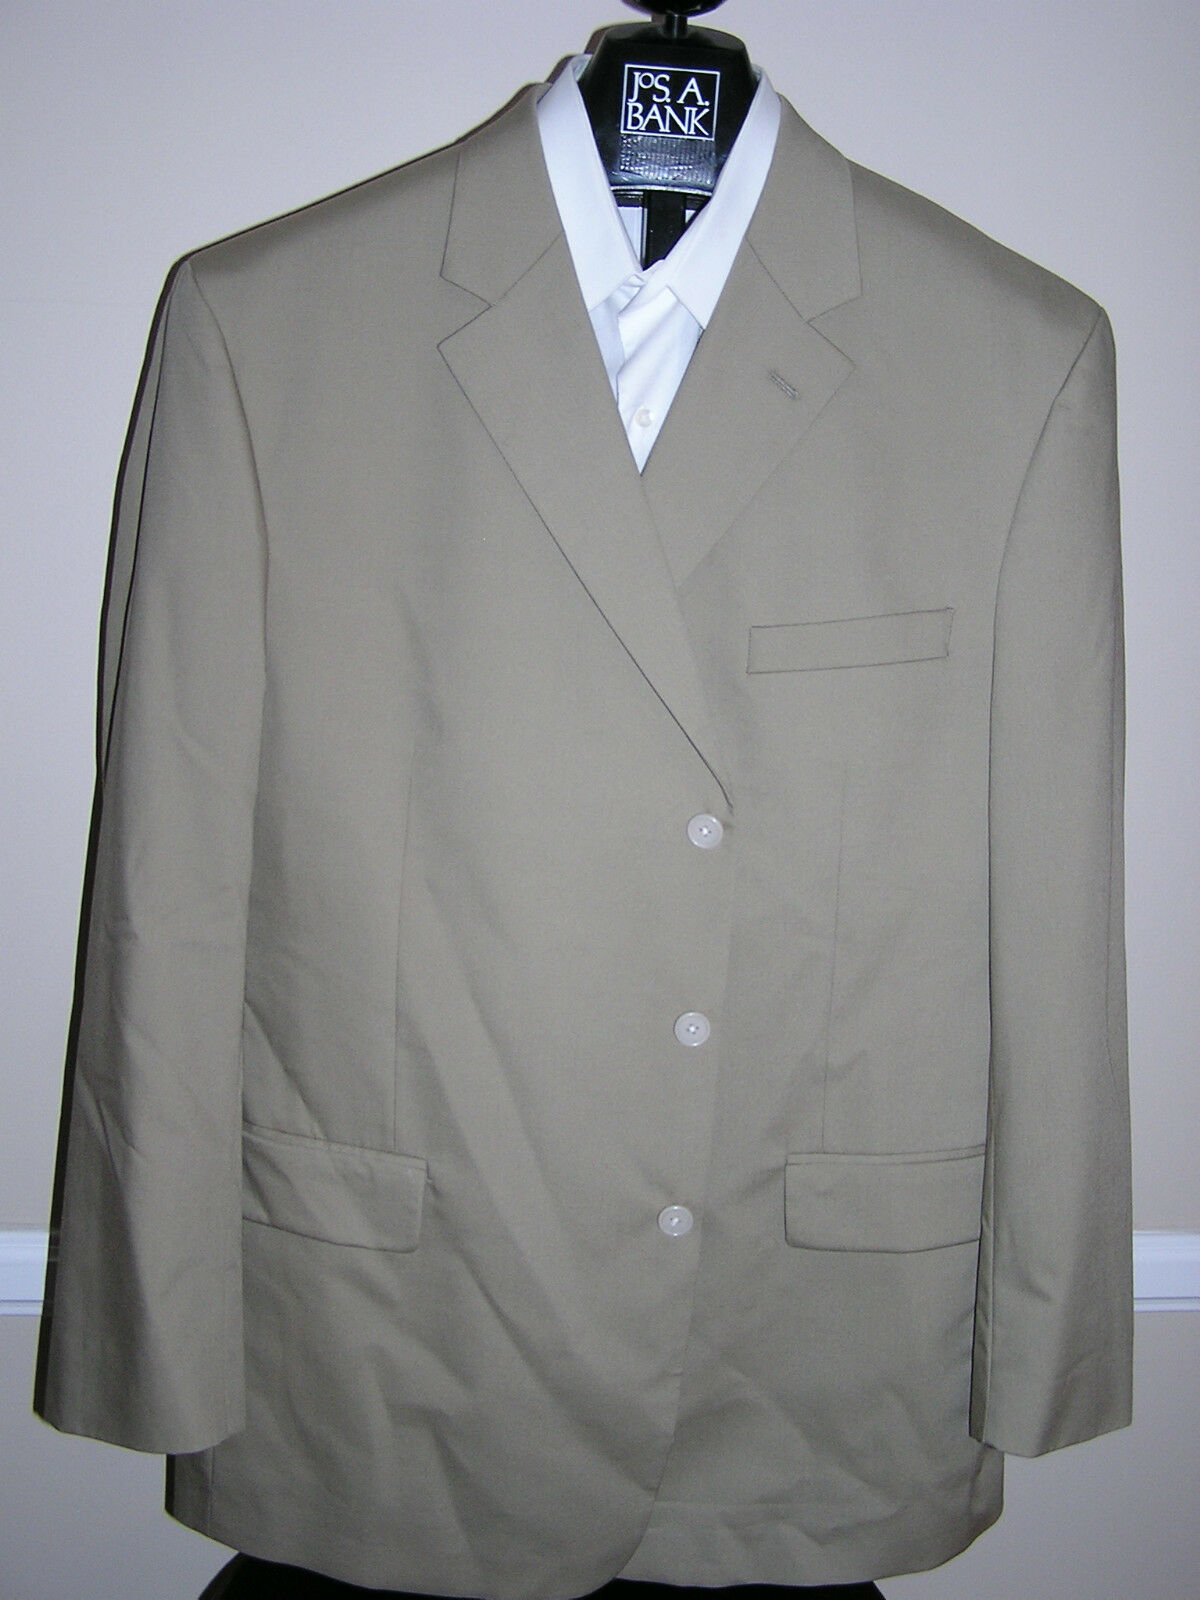 350 New Jos A Bank natural stretch Poplin 3 button suit in Solid Tan 38 R 33 W